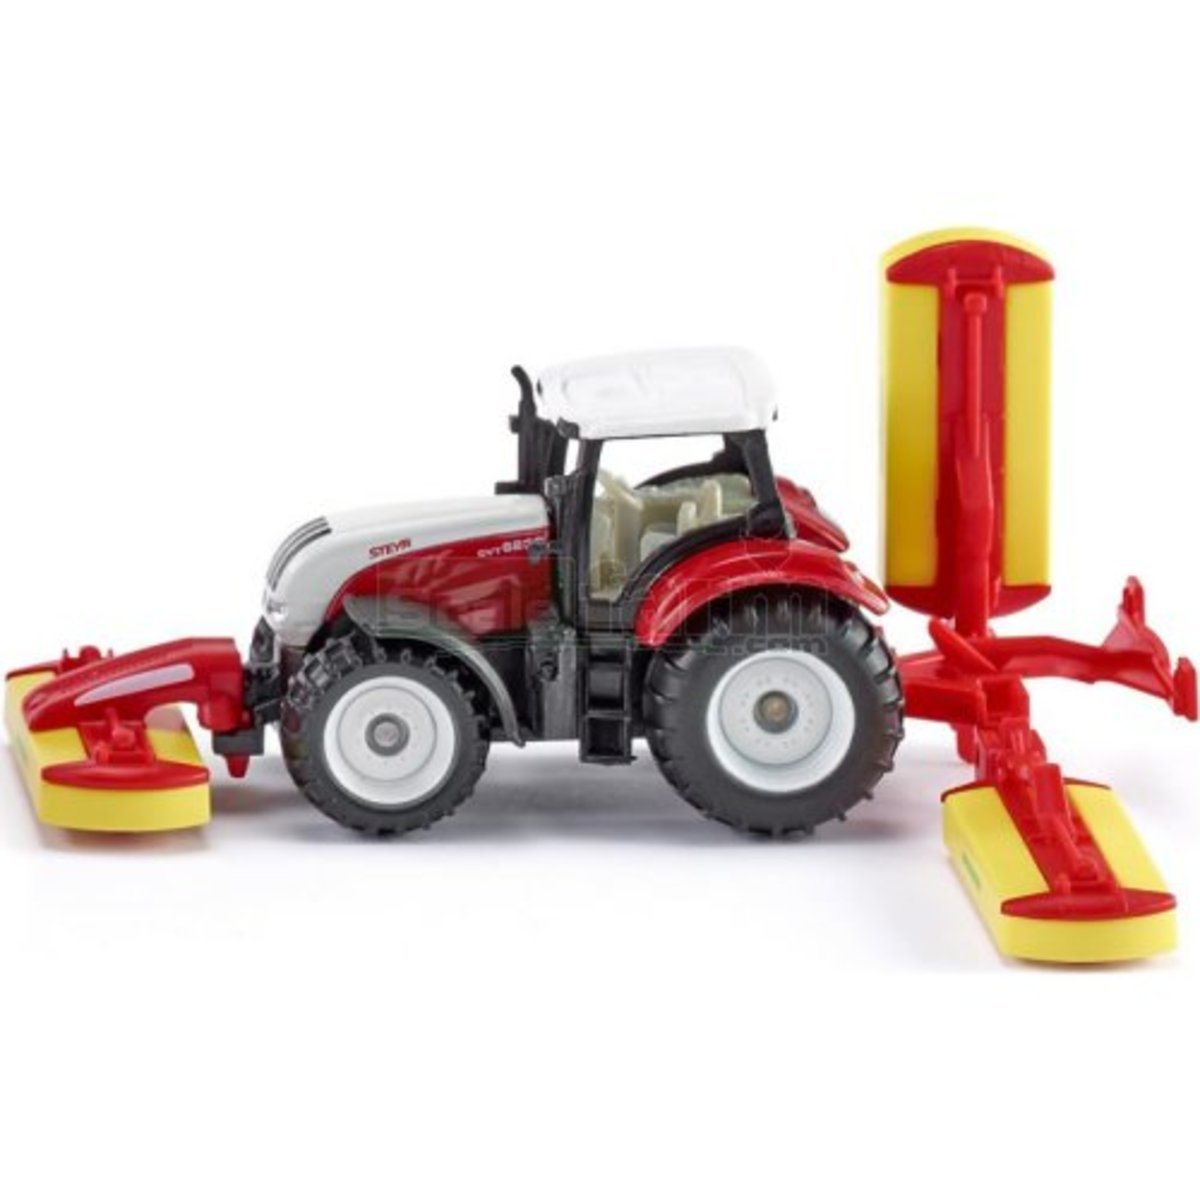 Siku 1672, Steyr with Pottinger Mower Combination 農業割草機